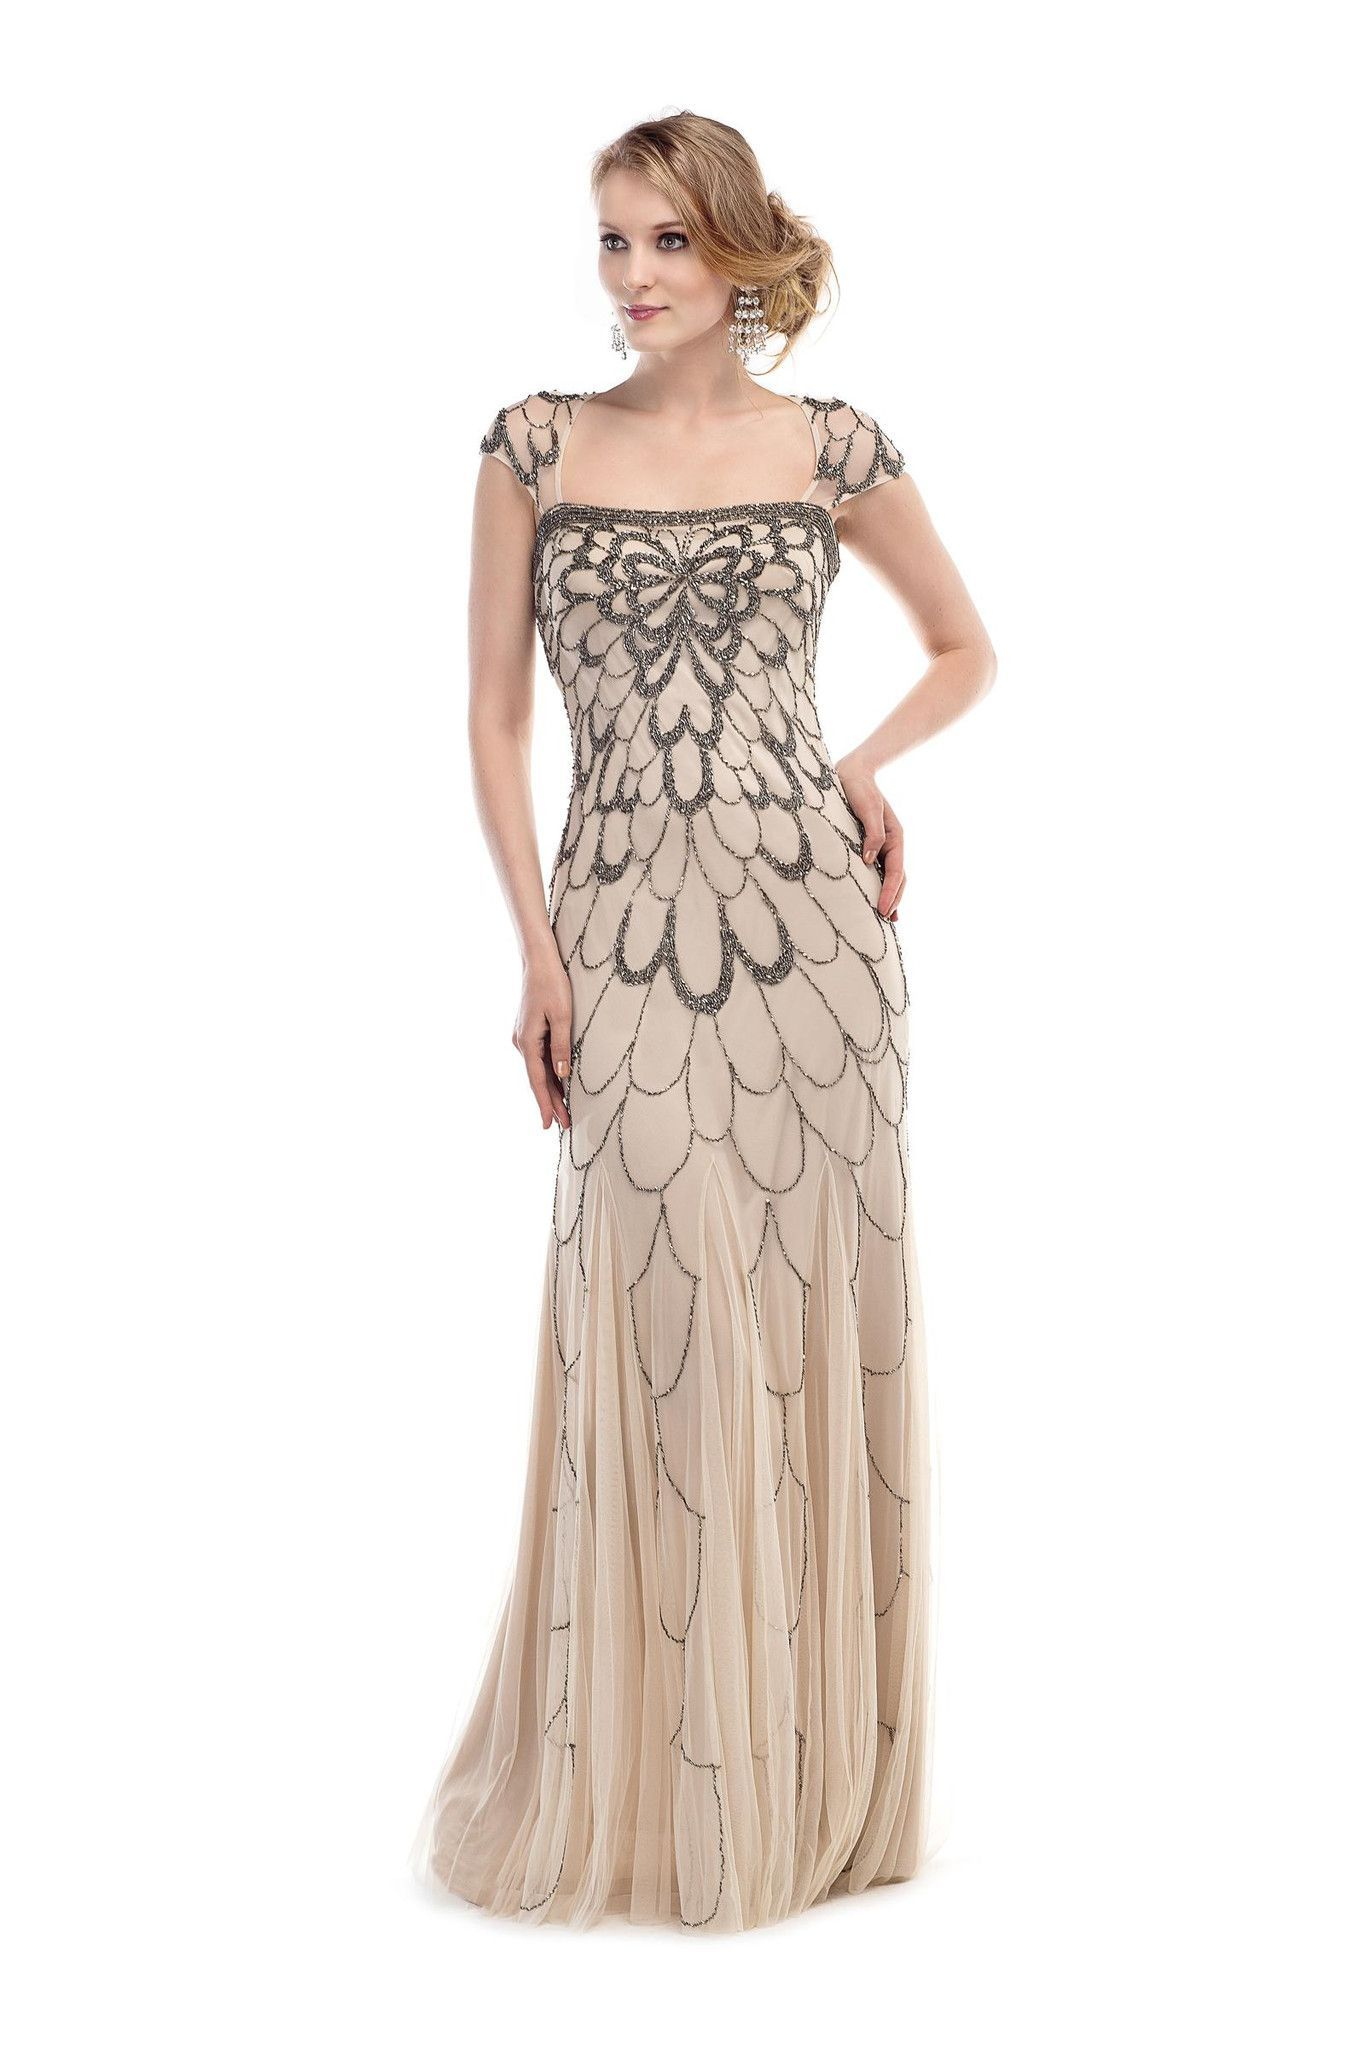 bf9bc866f6 GLOW G263 Beaded Flapper or Great Gatsby Style Prom Dress Evening Gown.  Elegant nude colored evening gown with metallic beading in an Art Decco  pattern ...